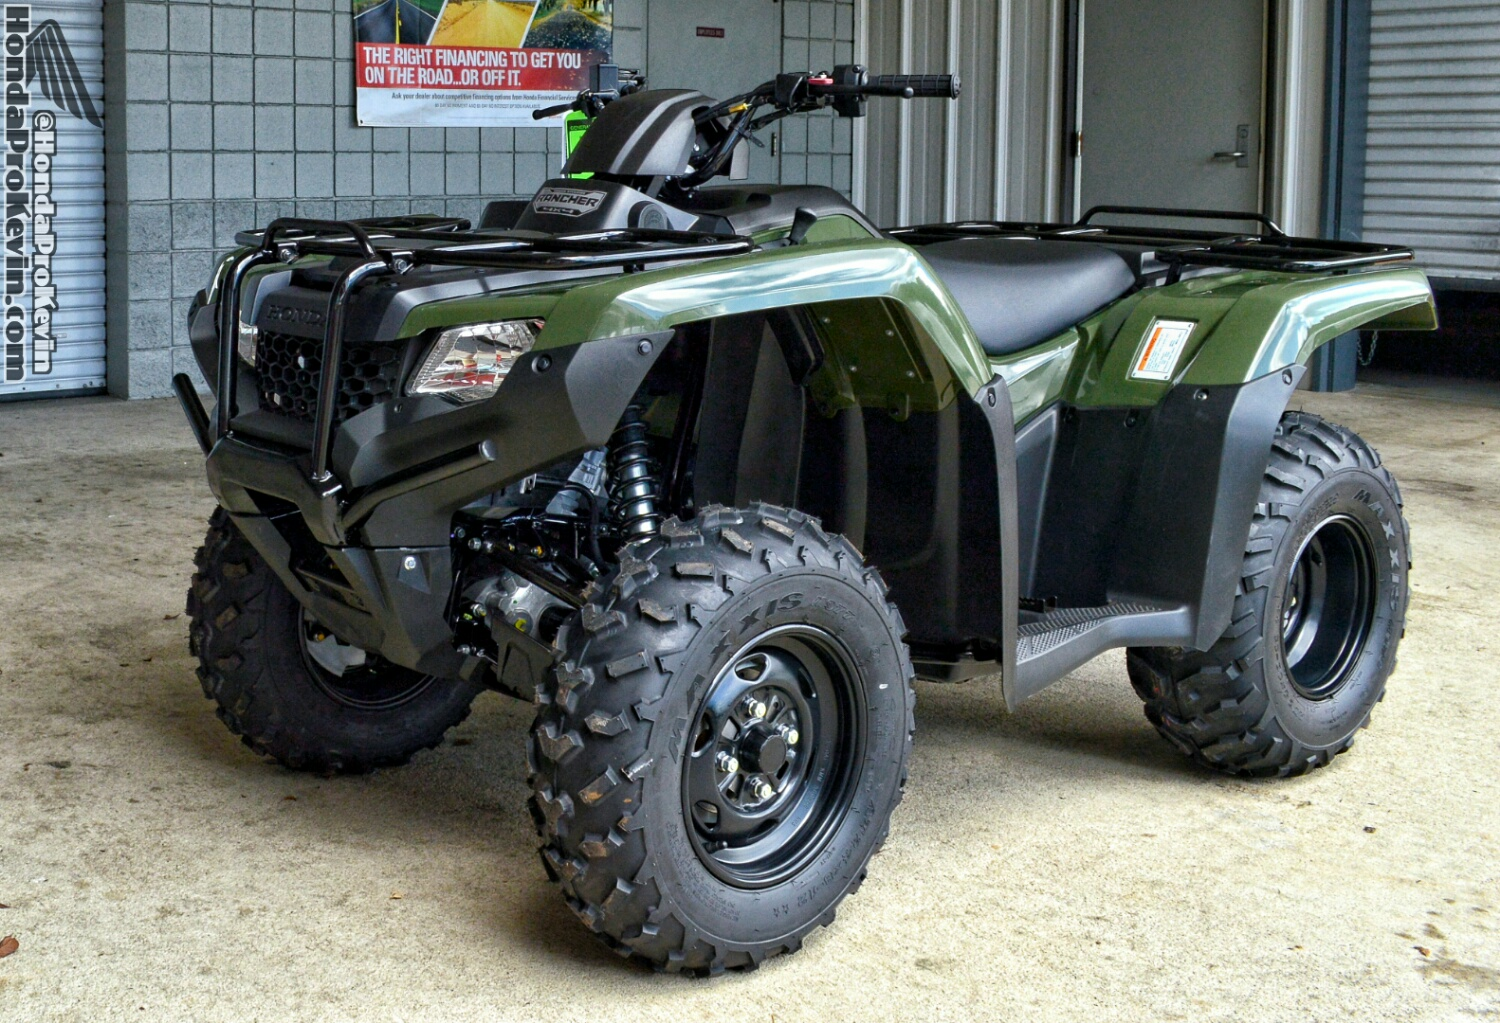 2017 Honda Rancher 420 Es Atv Review Specs Trx420fe1